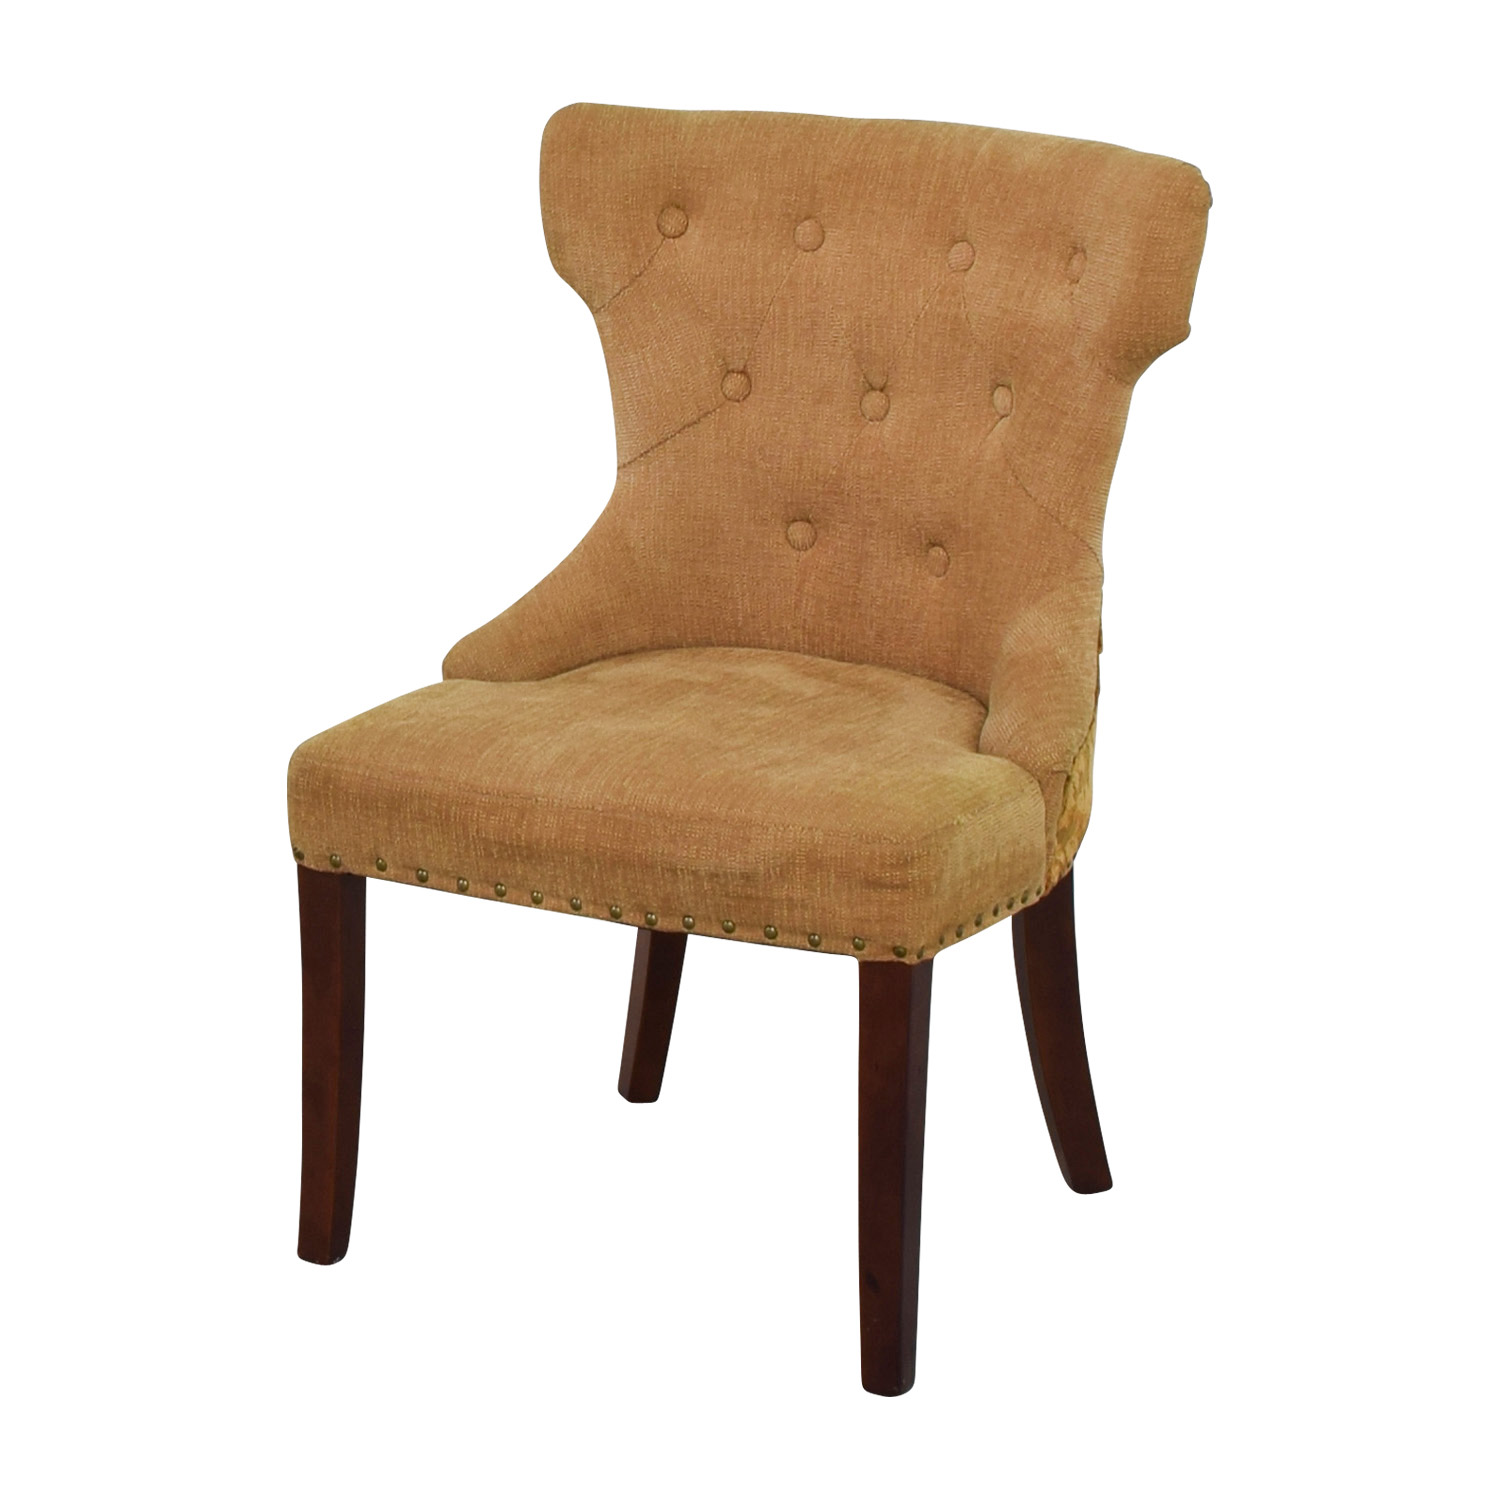 pier 1 imports chairs double taupe chair frame pier 1 pier one imports canada chairs. pier 1 imports chairs pier one imports chair sale. pier 1 imports chairs loading pier one imports canada chairs.